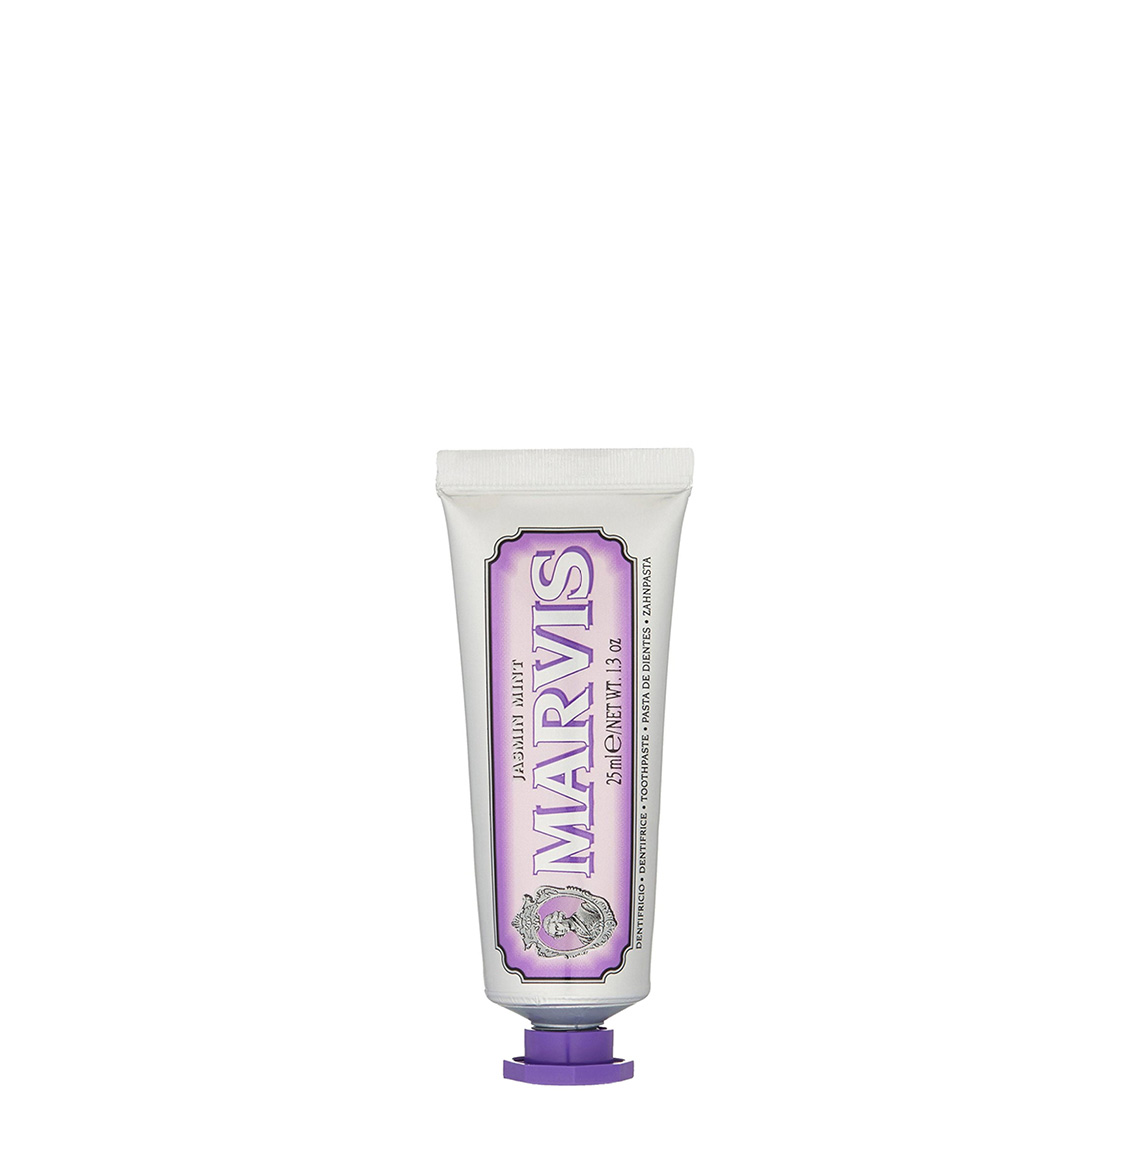 Marvis_Jasmin_Mint_Toothpaste_25ml_Xylitol_The_Project_Garments_A